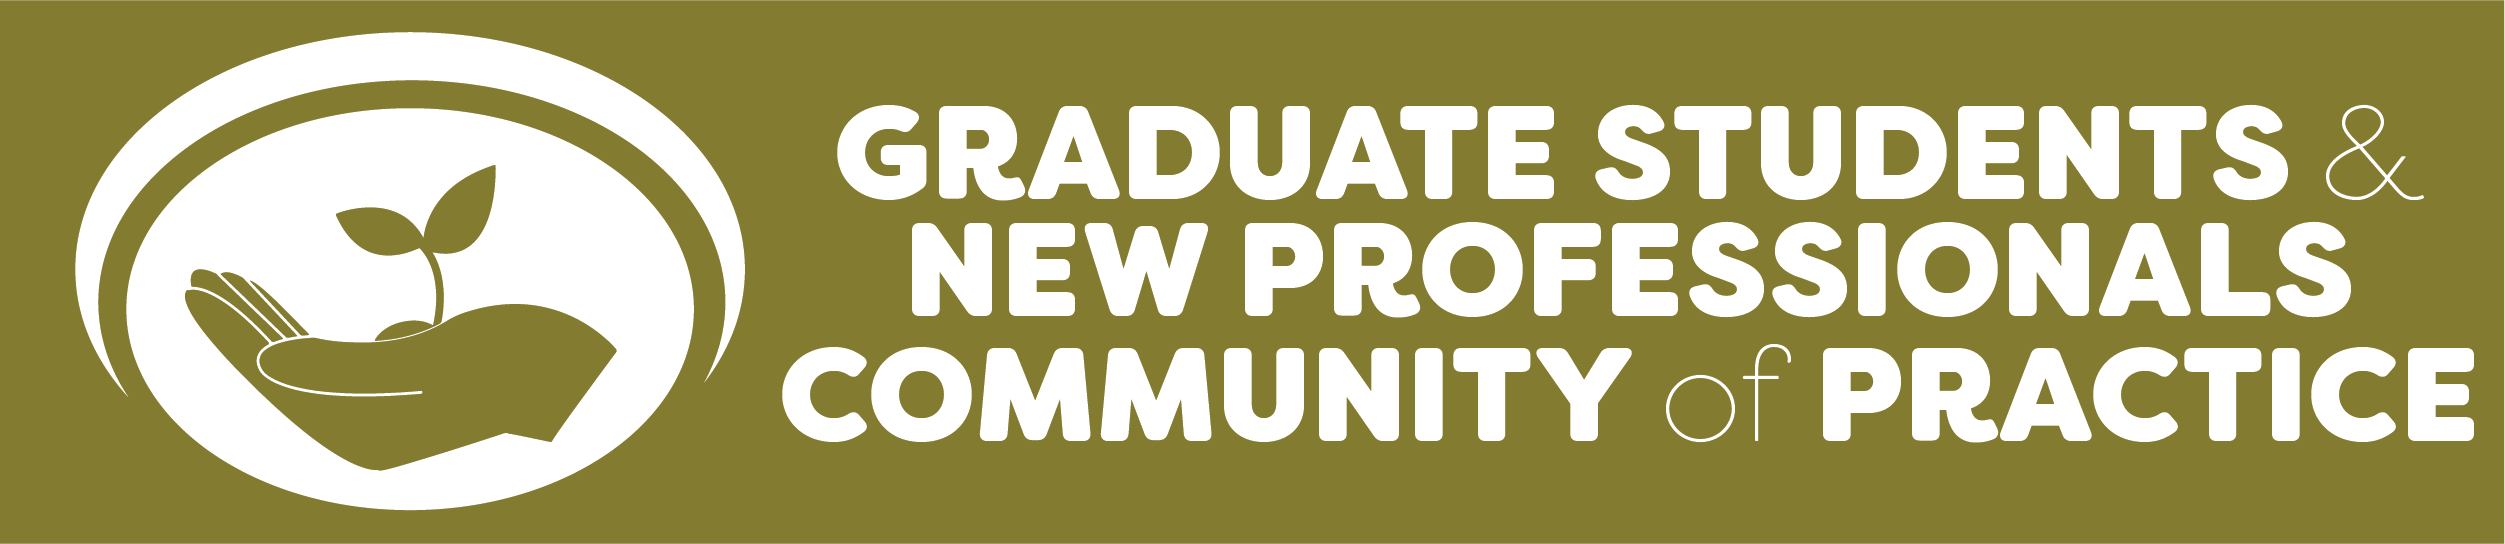 Graduate student and new professionals community of practice